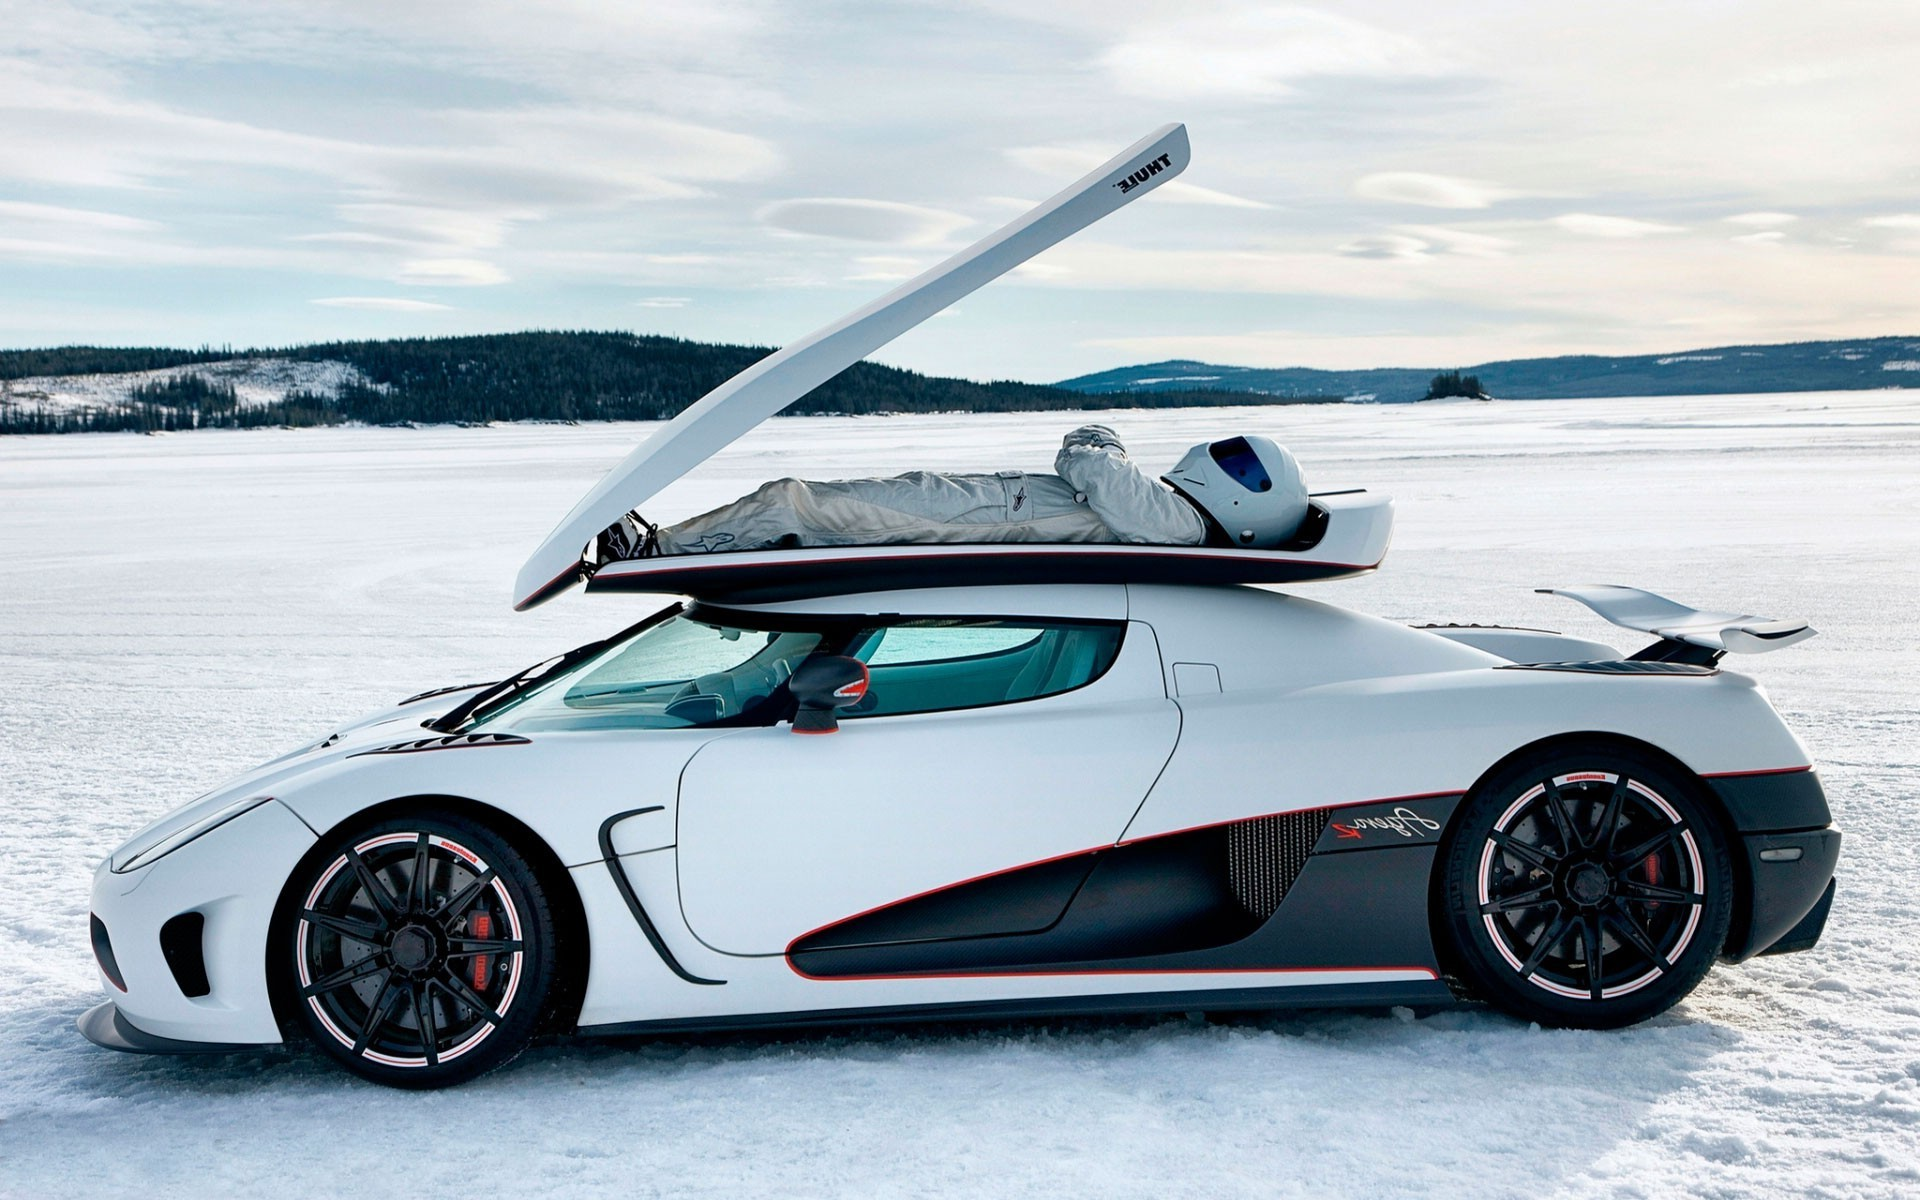 1920x1200 car winter vehicle sports car Koenigsegg Agera R Koenigsegg CCX Top Gear The  Stig Koenigsegg CCR